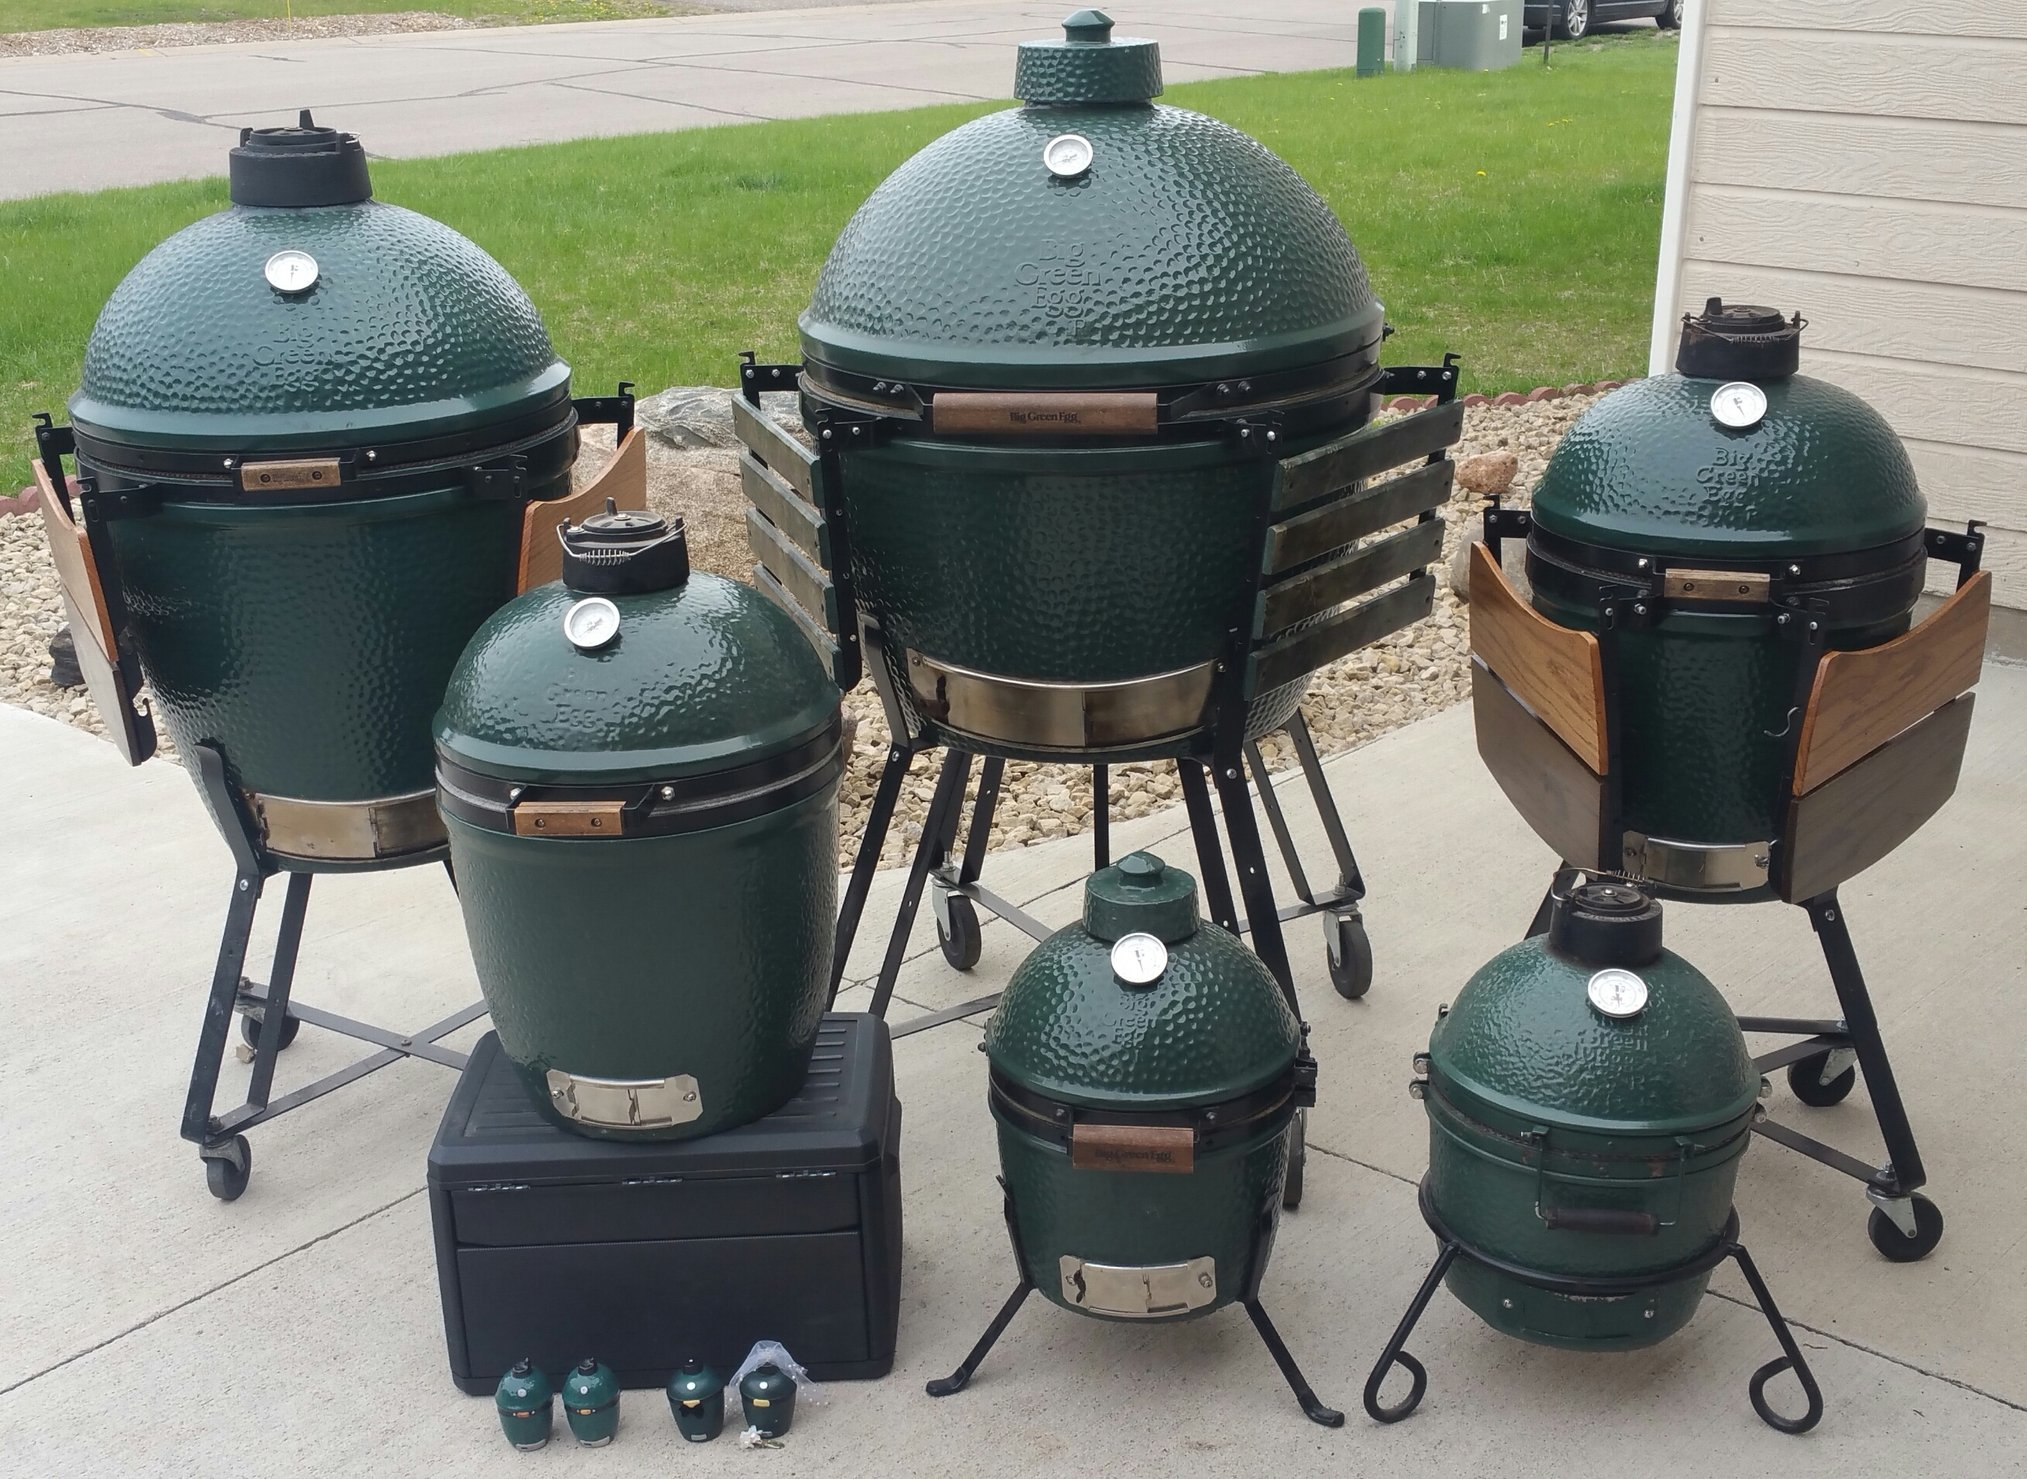 Craigslist Thomasville Ga Stunning So Why Did I Sell Off Some Of The Big Green Egg Family An